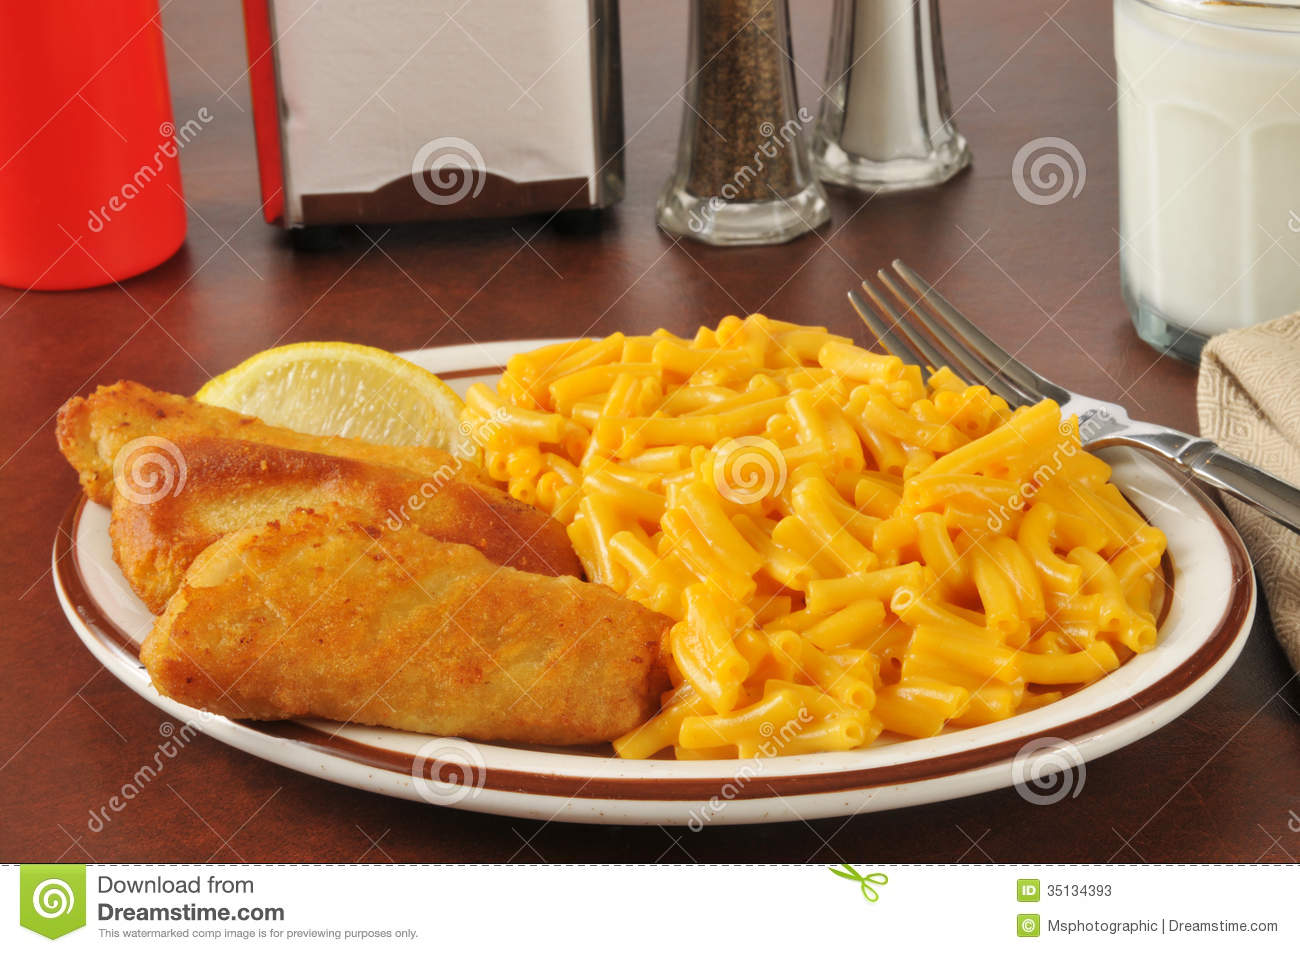 Fish sticks with macaroni and cheese stock photos image for Fish and cheese